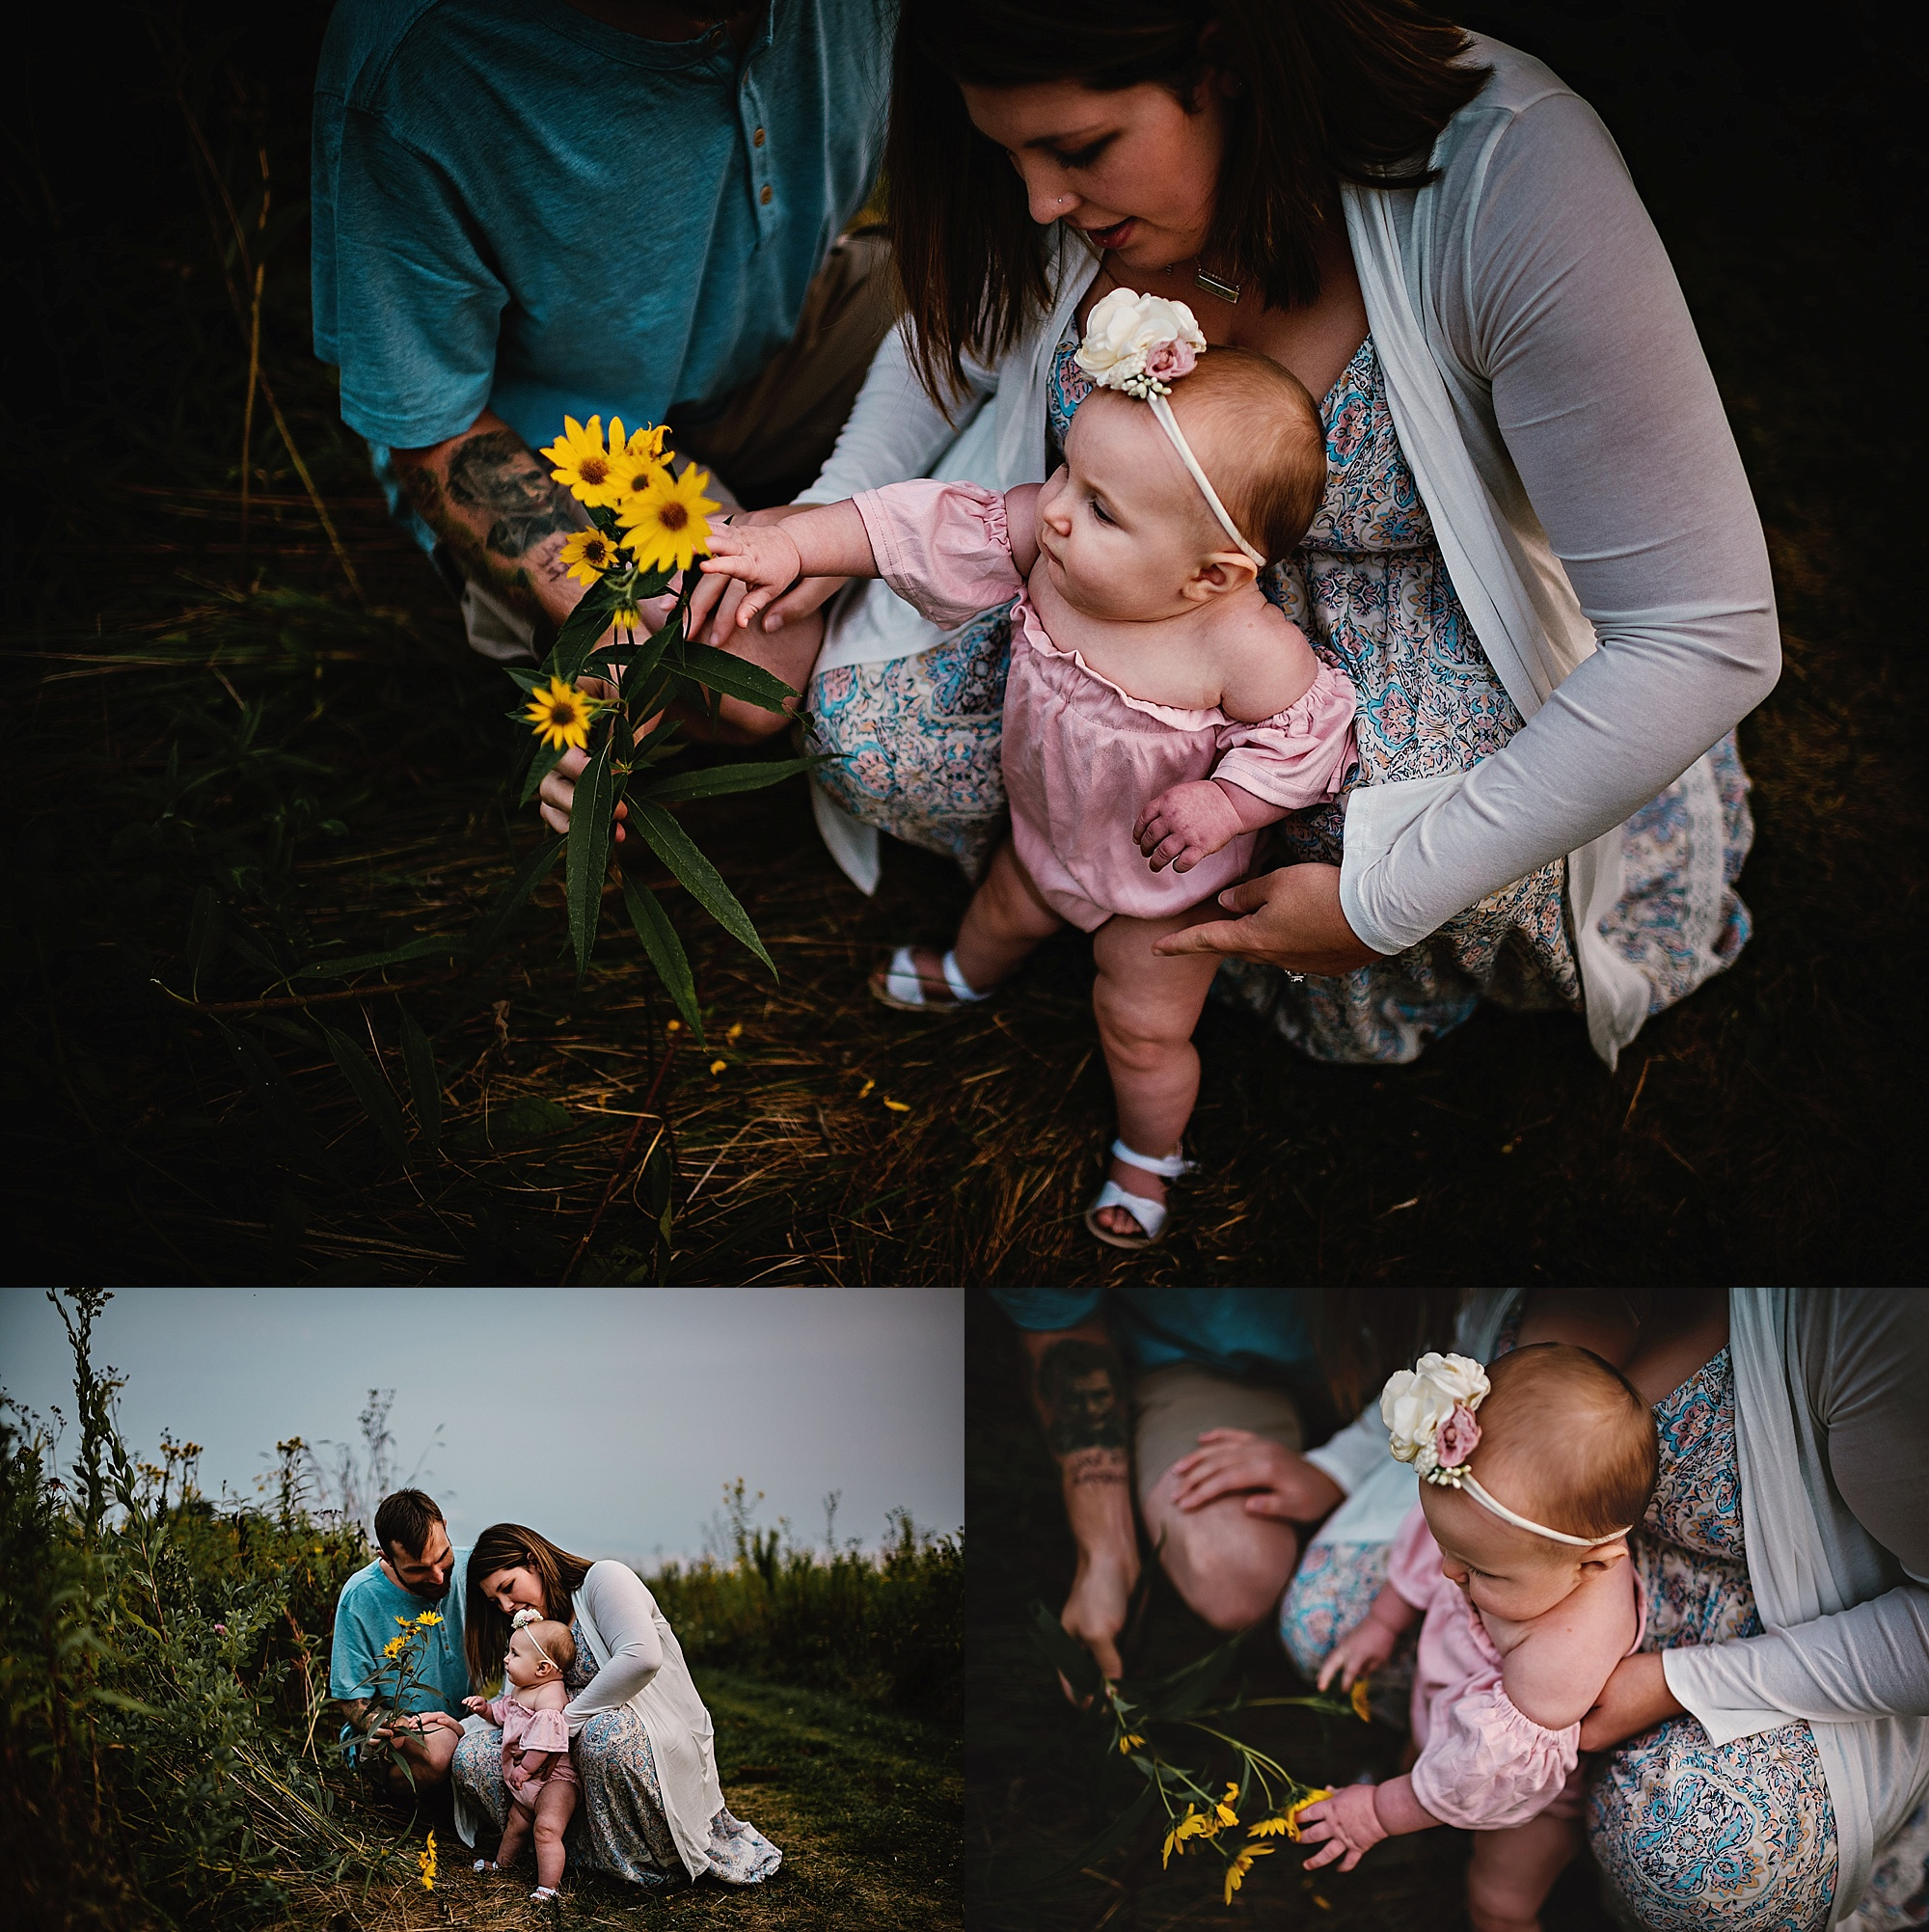 amber-lauren-grayson-photography-springfield-bog-akron-ohio-family-photographer_0014.jpg